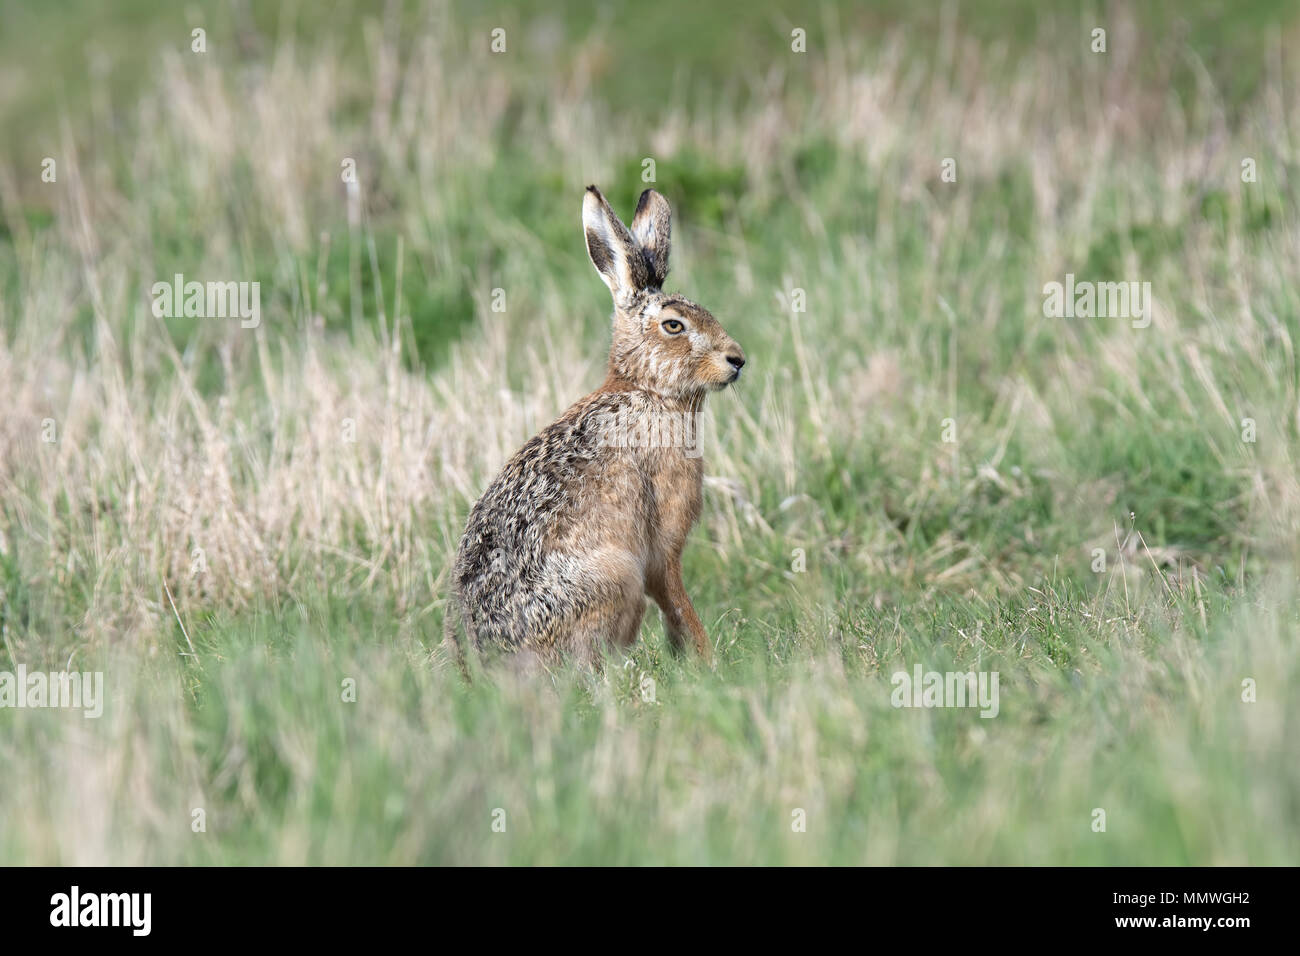 Brown Hare sitting upright - Stock Image